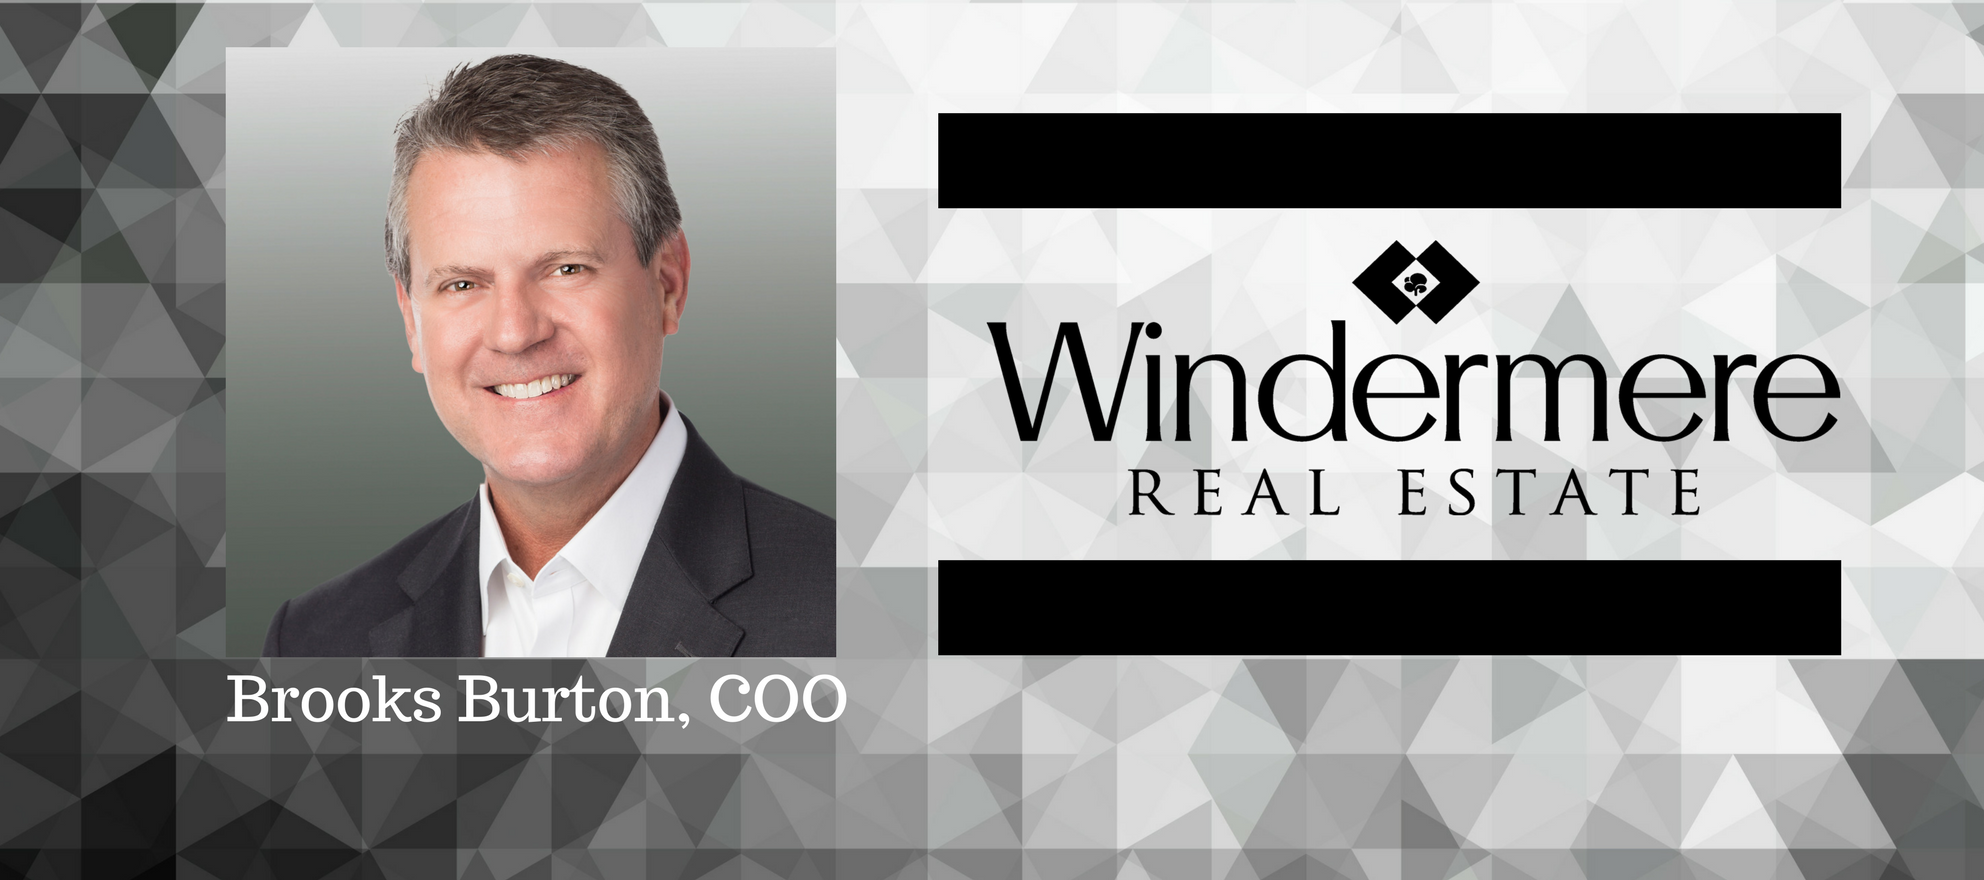 windermere real estate first coo brooks burton